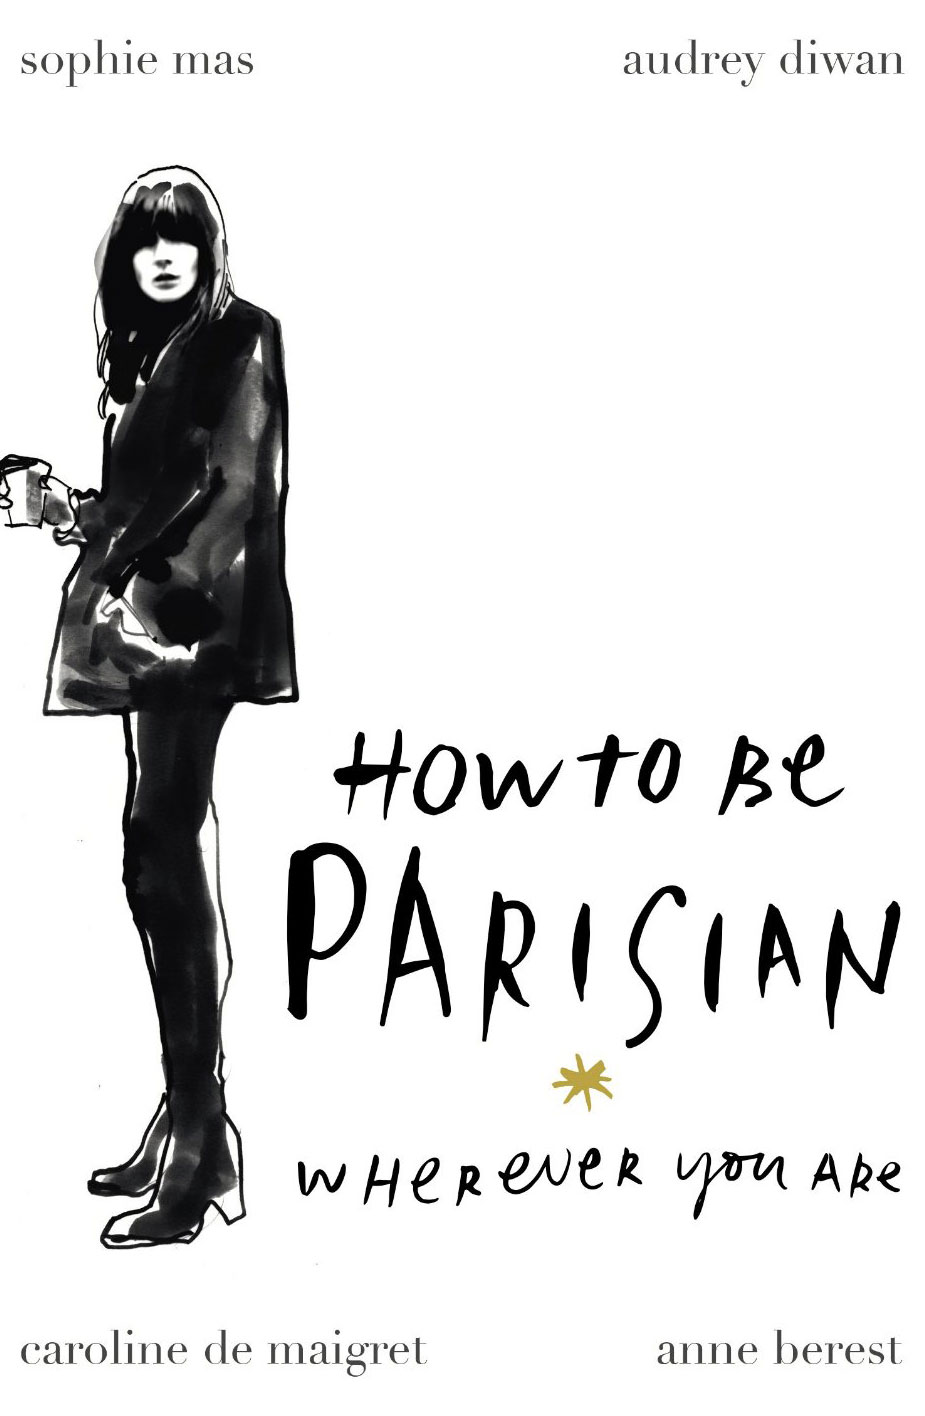 via fashionedbylove: How to be parisian: wherever you are | book review + preview